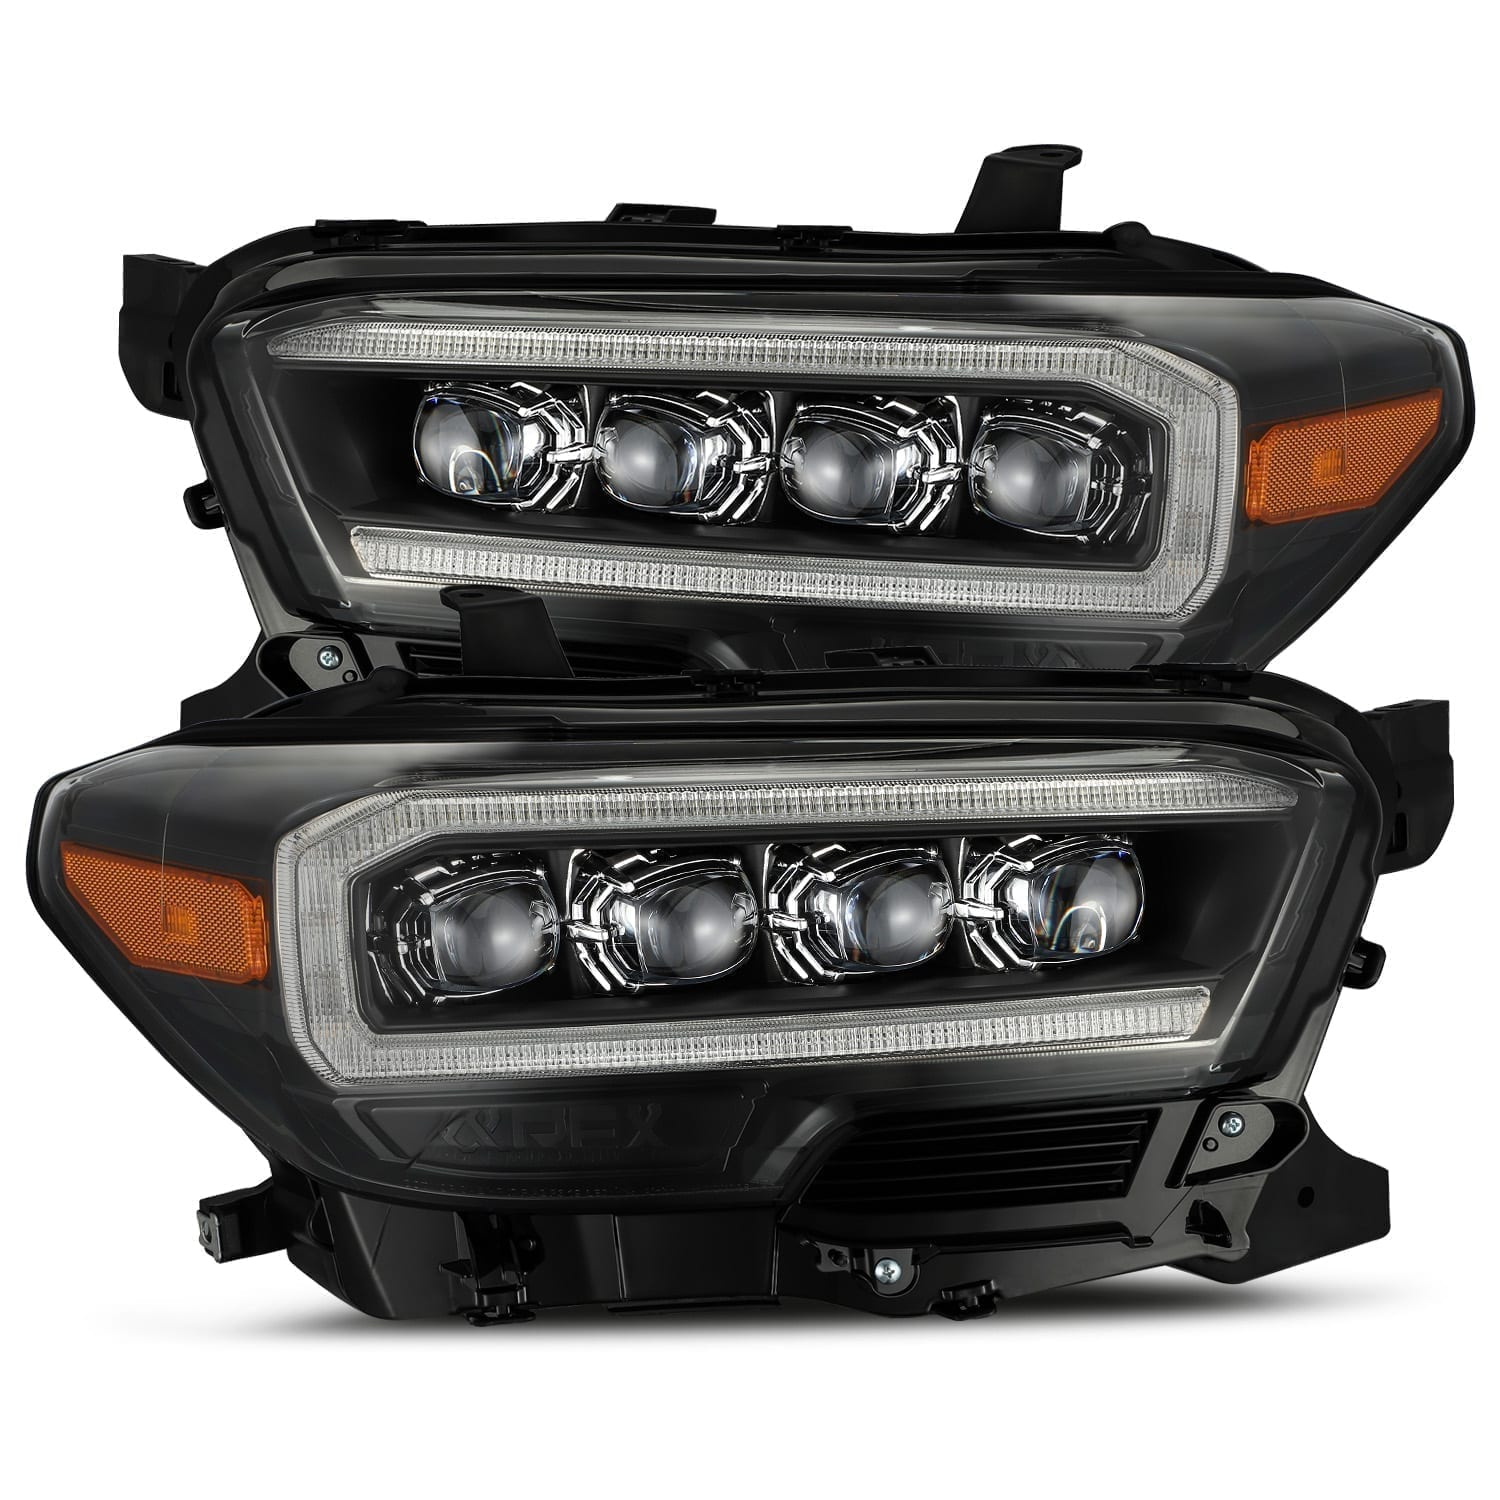 AlphaRex 16-20 Toyota Tacoma NOVA-Series LED Projector Headlights Black